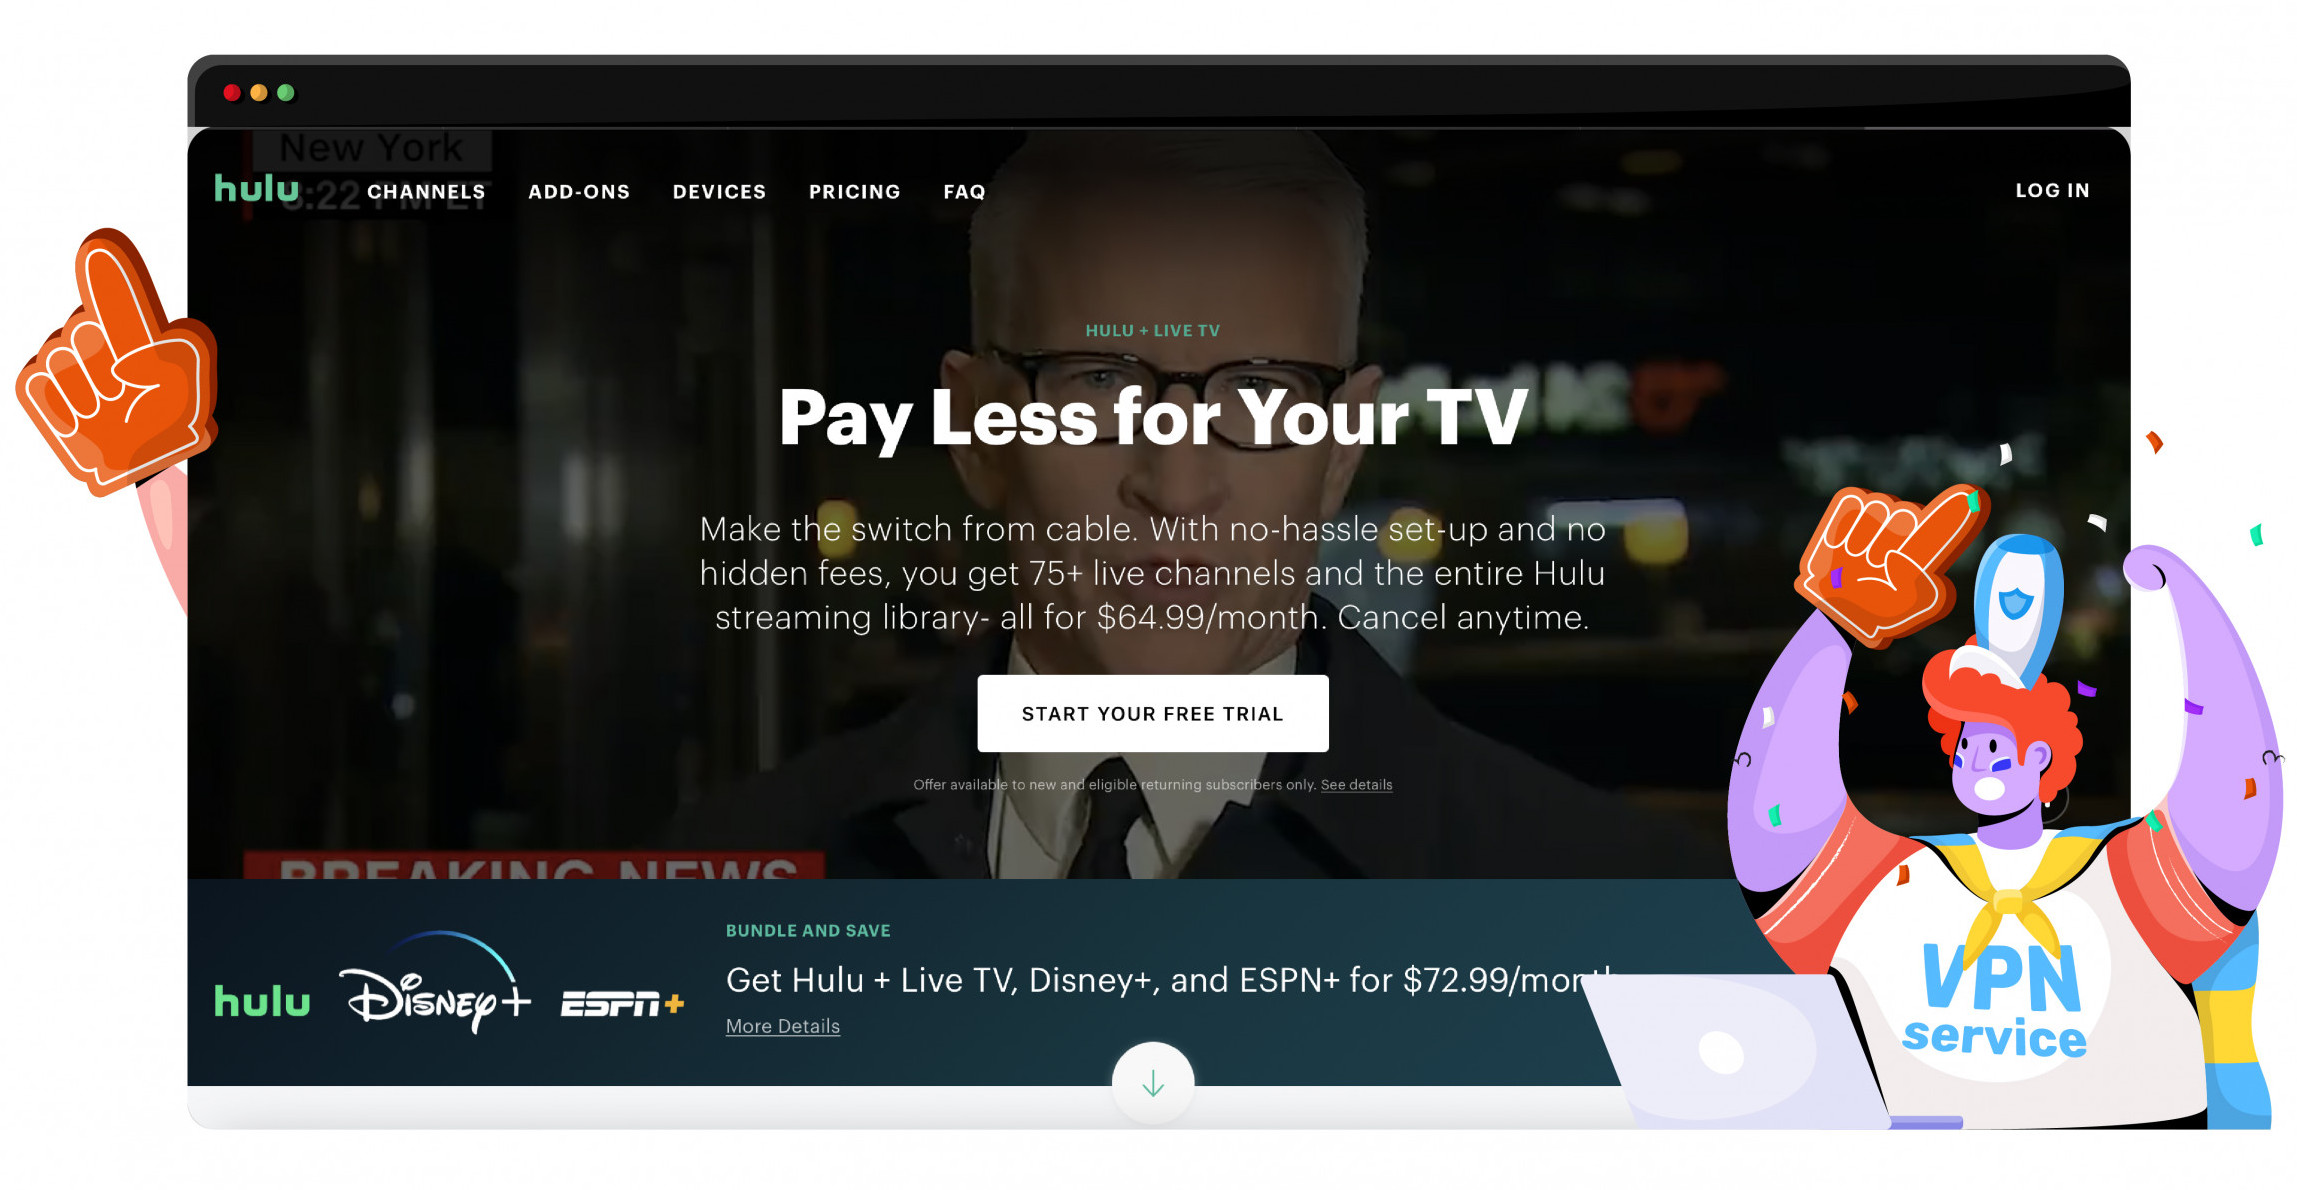 Access subscription bundles and family entertainment on Hulu + Live TV